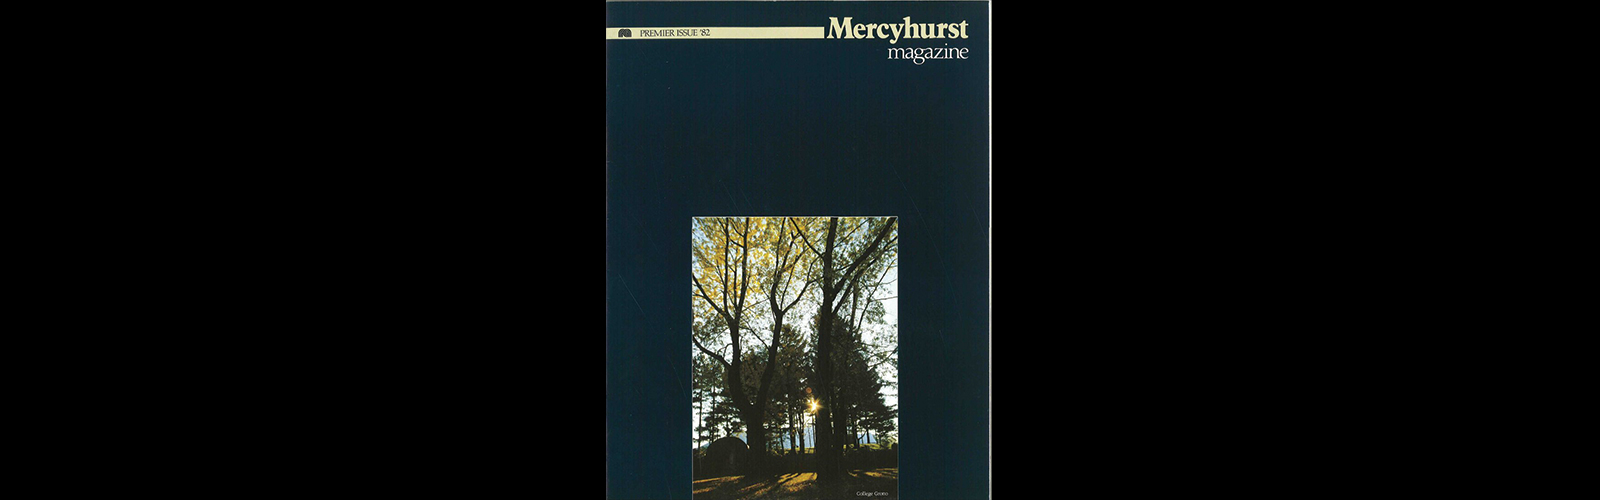 mercyhurst magazine